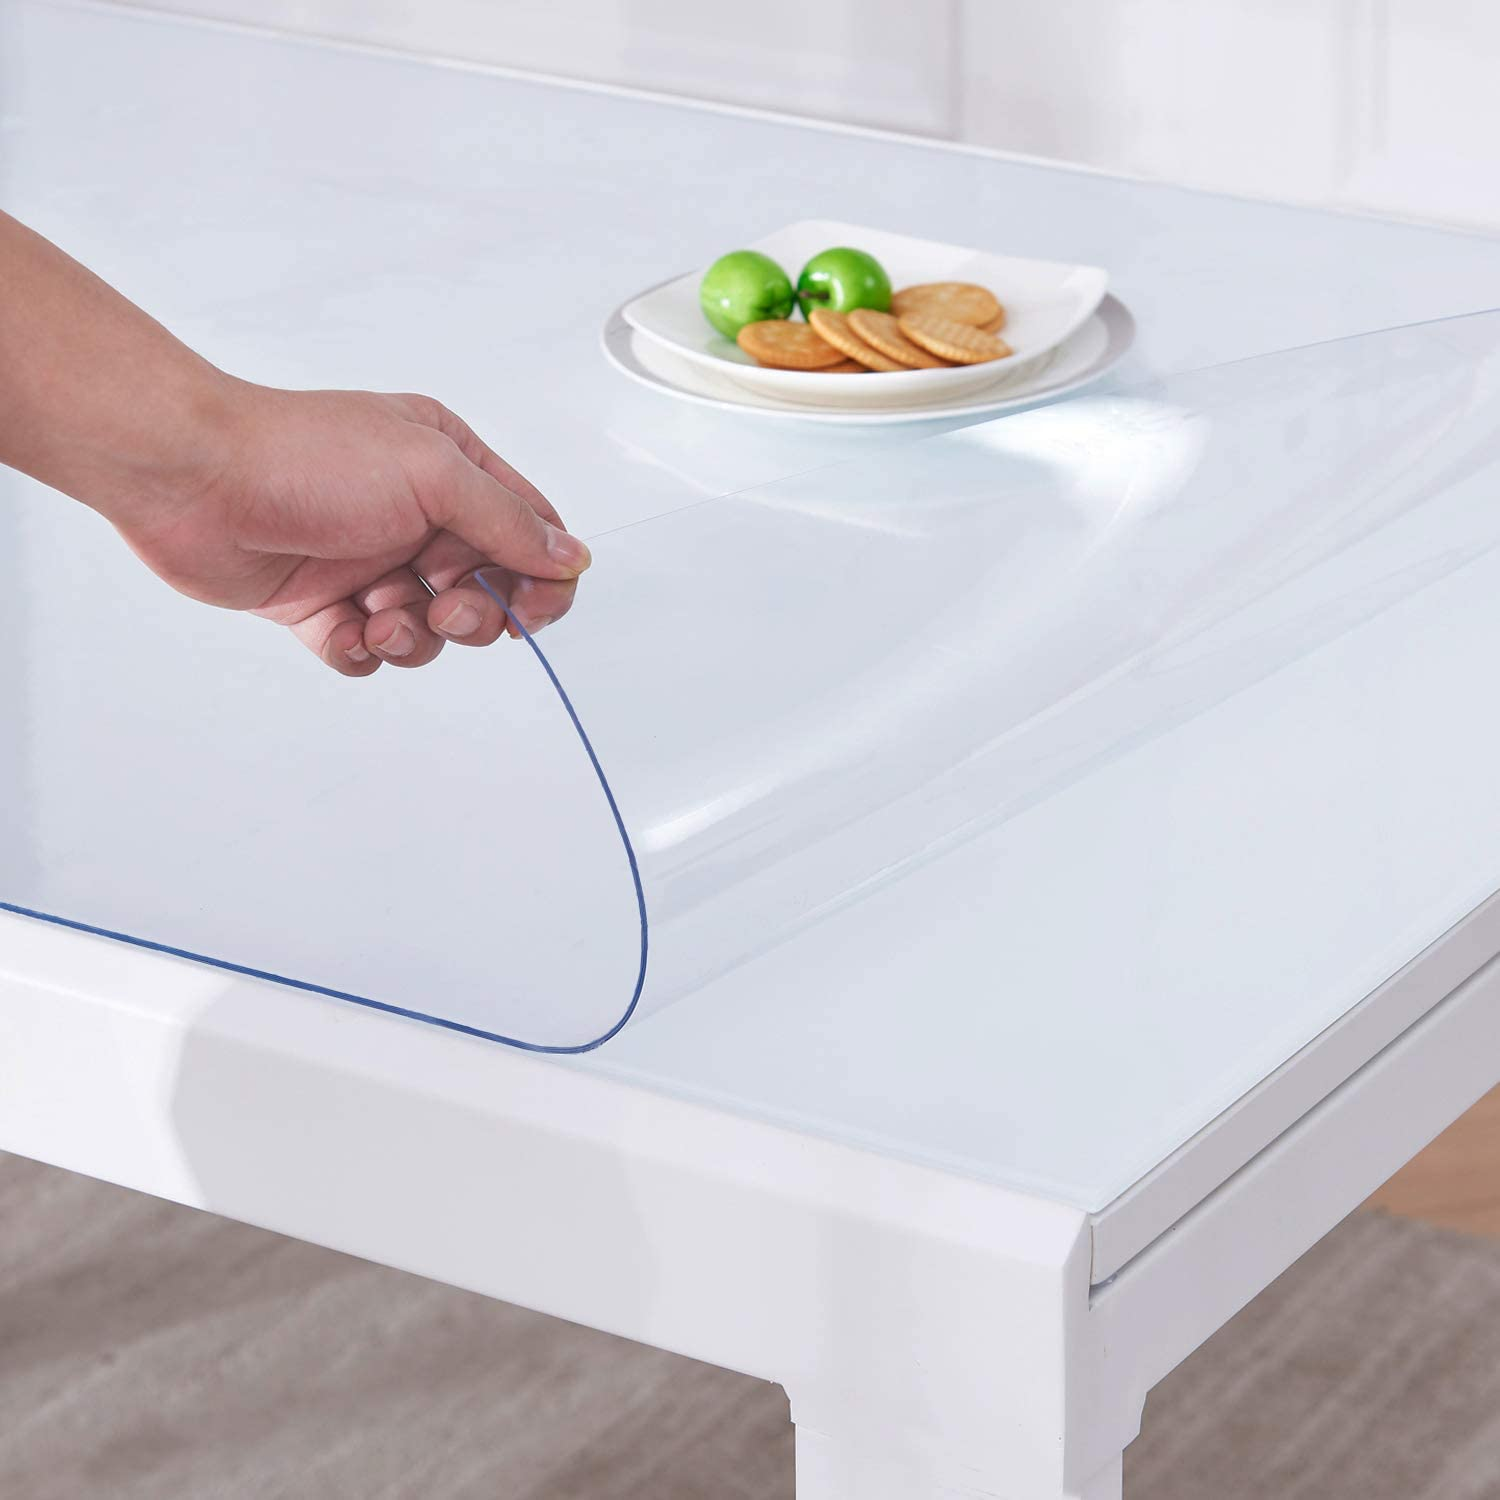 LIMNUO Clear Table Cover Protector 1.5mm Thick Credence 24 P x Inches 86 Long-awaited